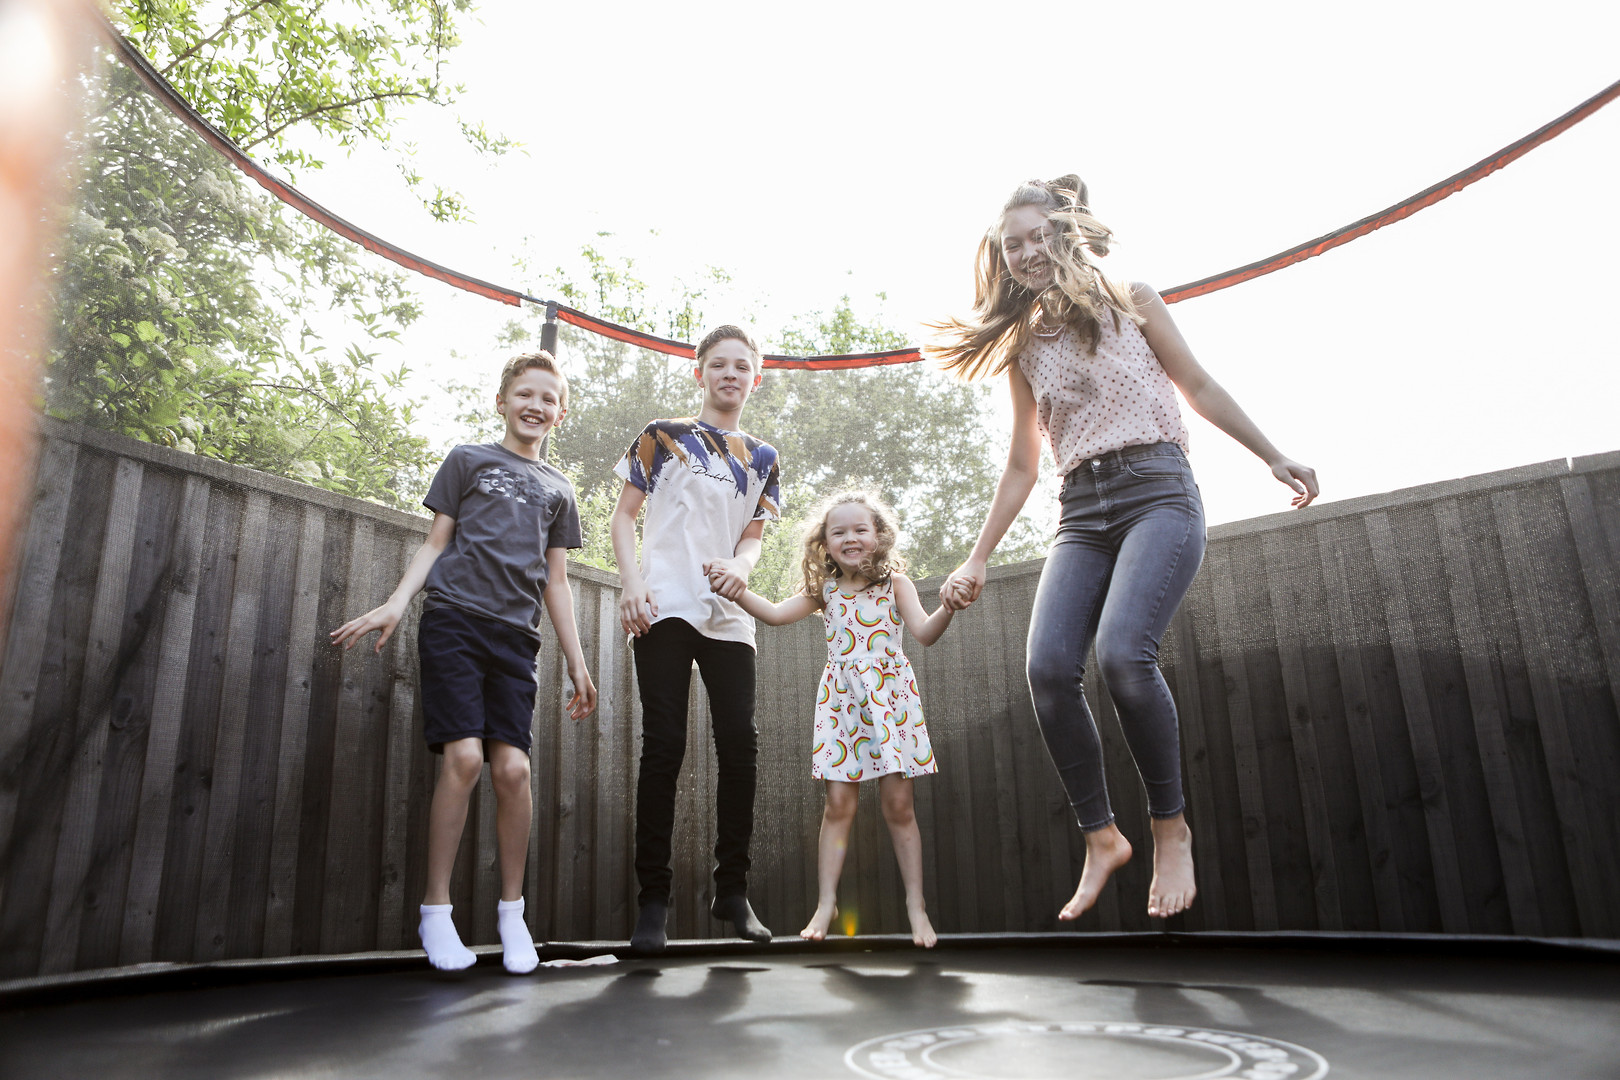 Fun in the garden on a trampoline or doing soemthing they enjoy to get them all involved.